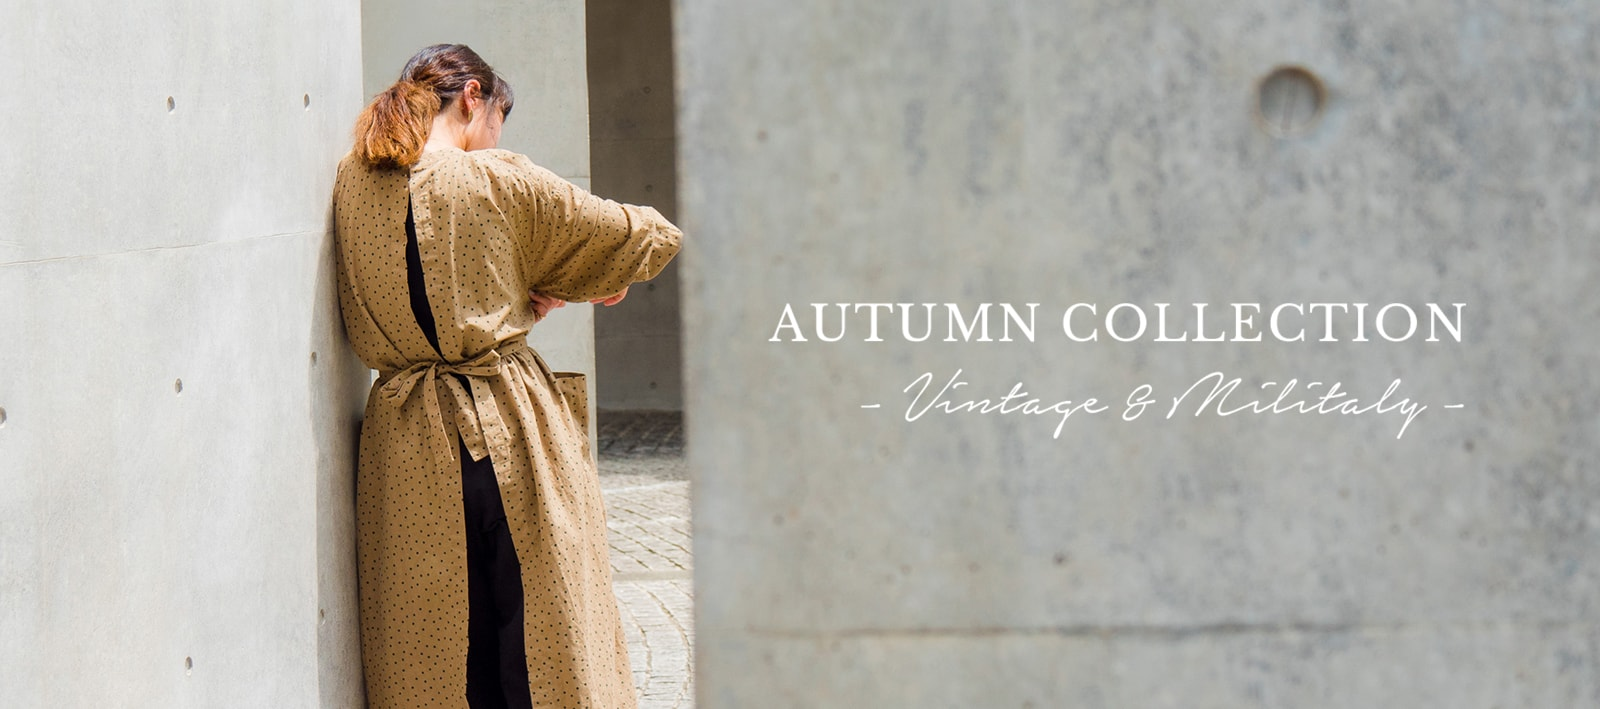 AUTUMN COLLECTION - Vintage & Militaly -